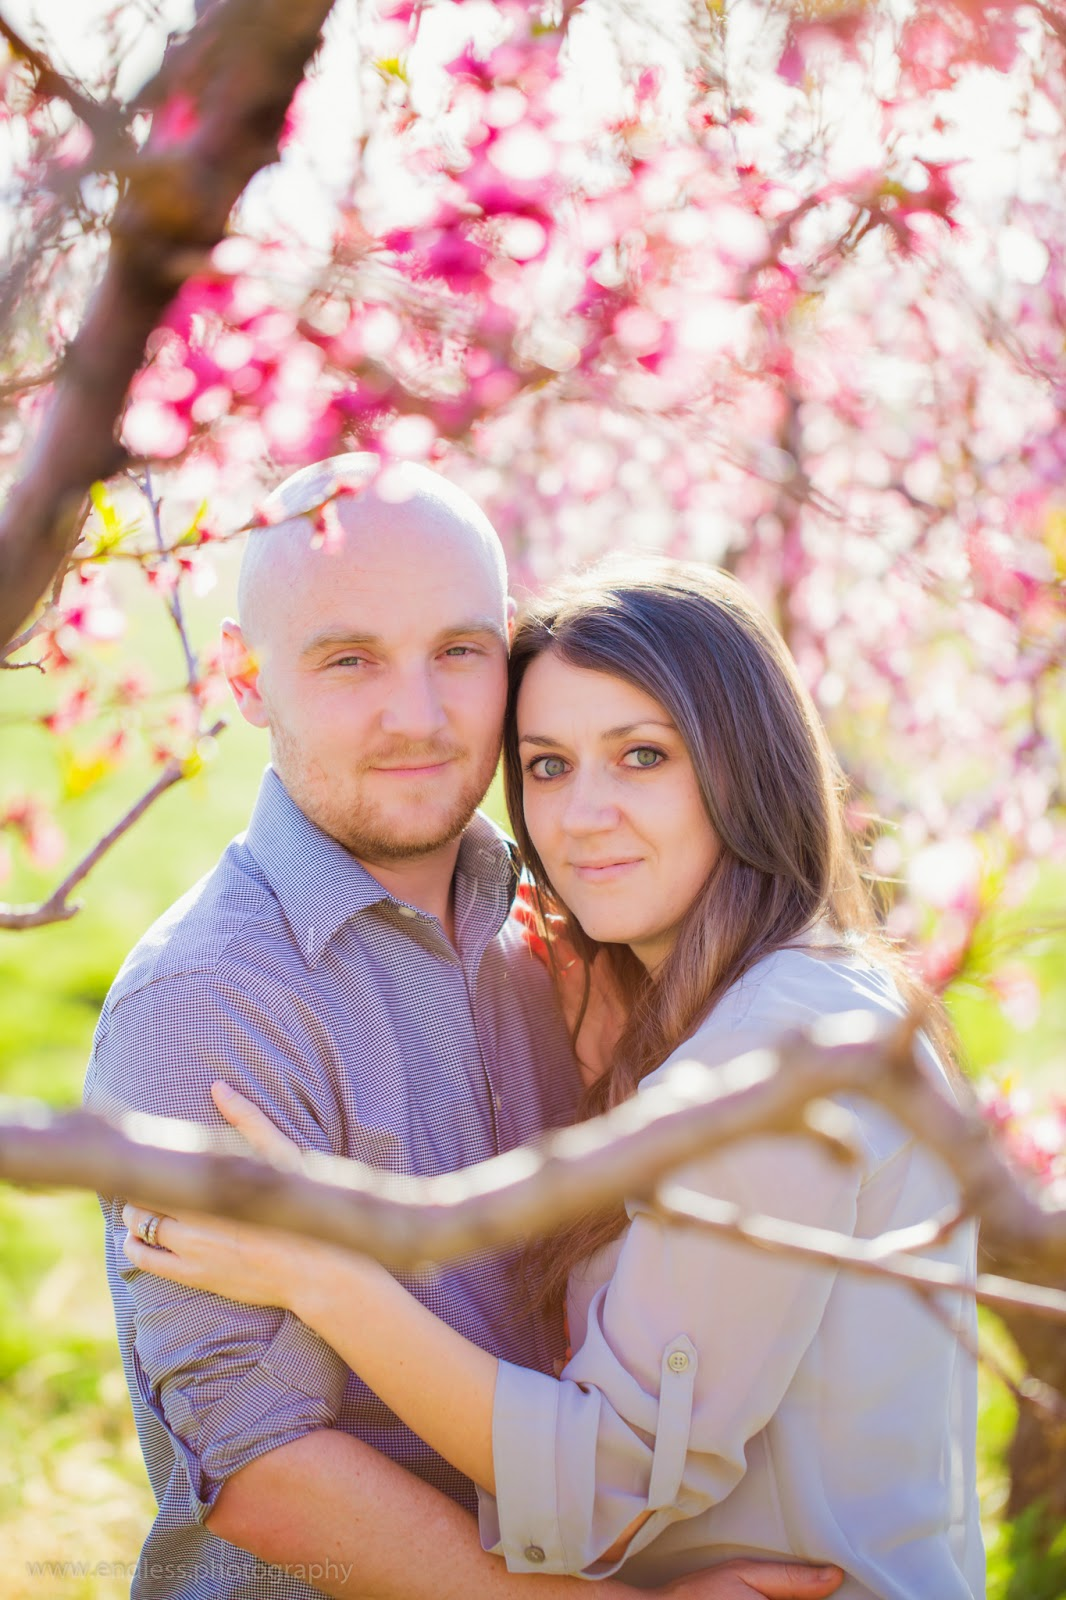 Logan Photography, Utah, Photographer, Utah Wedding Photographer, Photographers, Spring, Orchard, Couple, Wedding